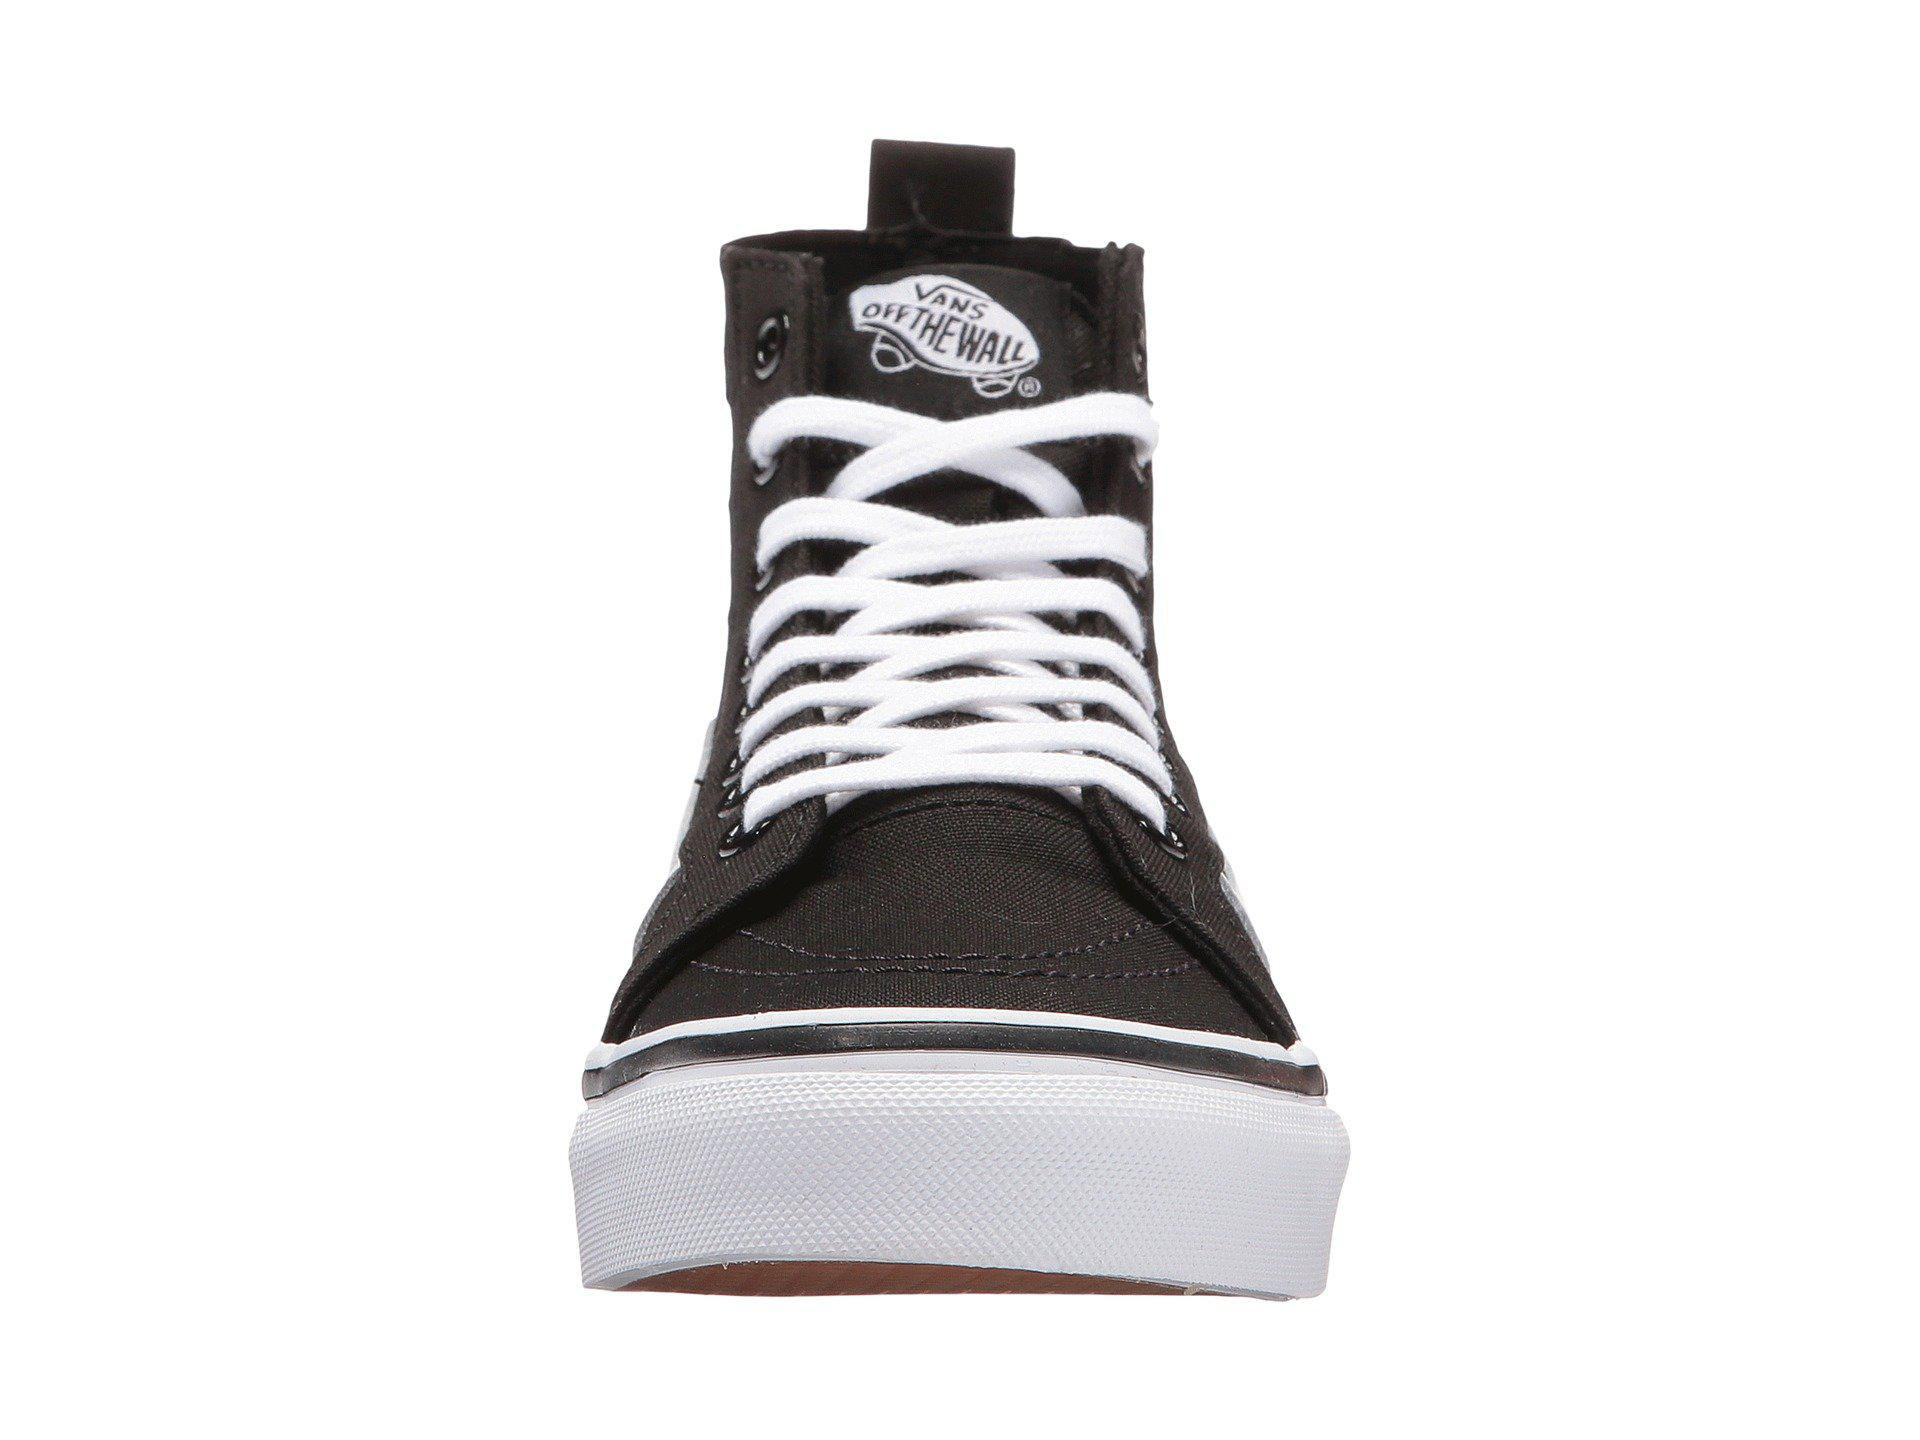 7d23e77f44 Gallery. Previously sold at  Zappos · Men s Skate Sneakers ...